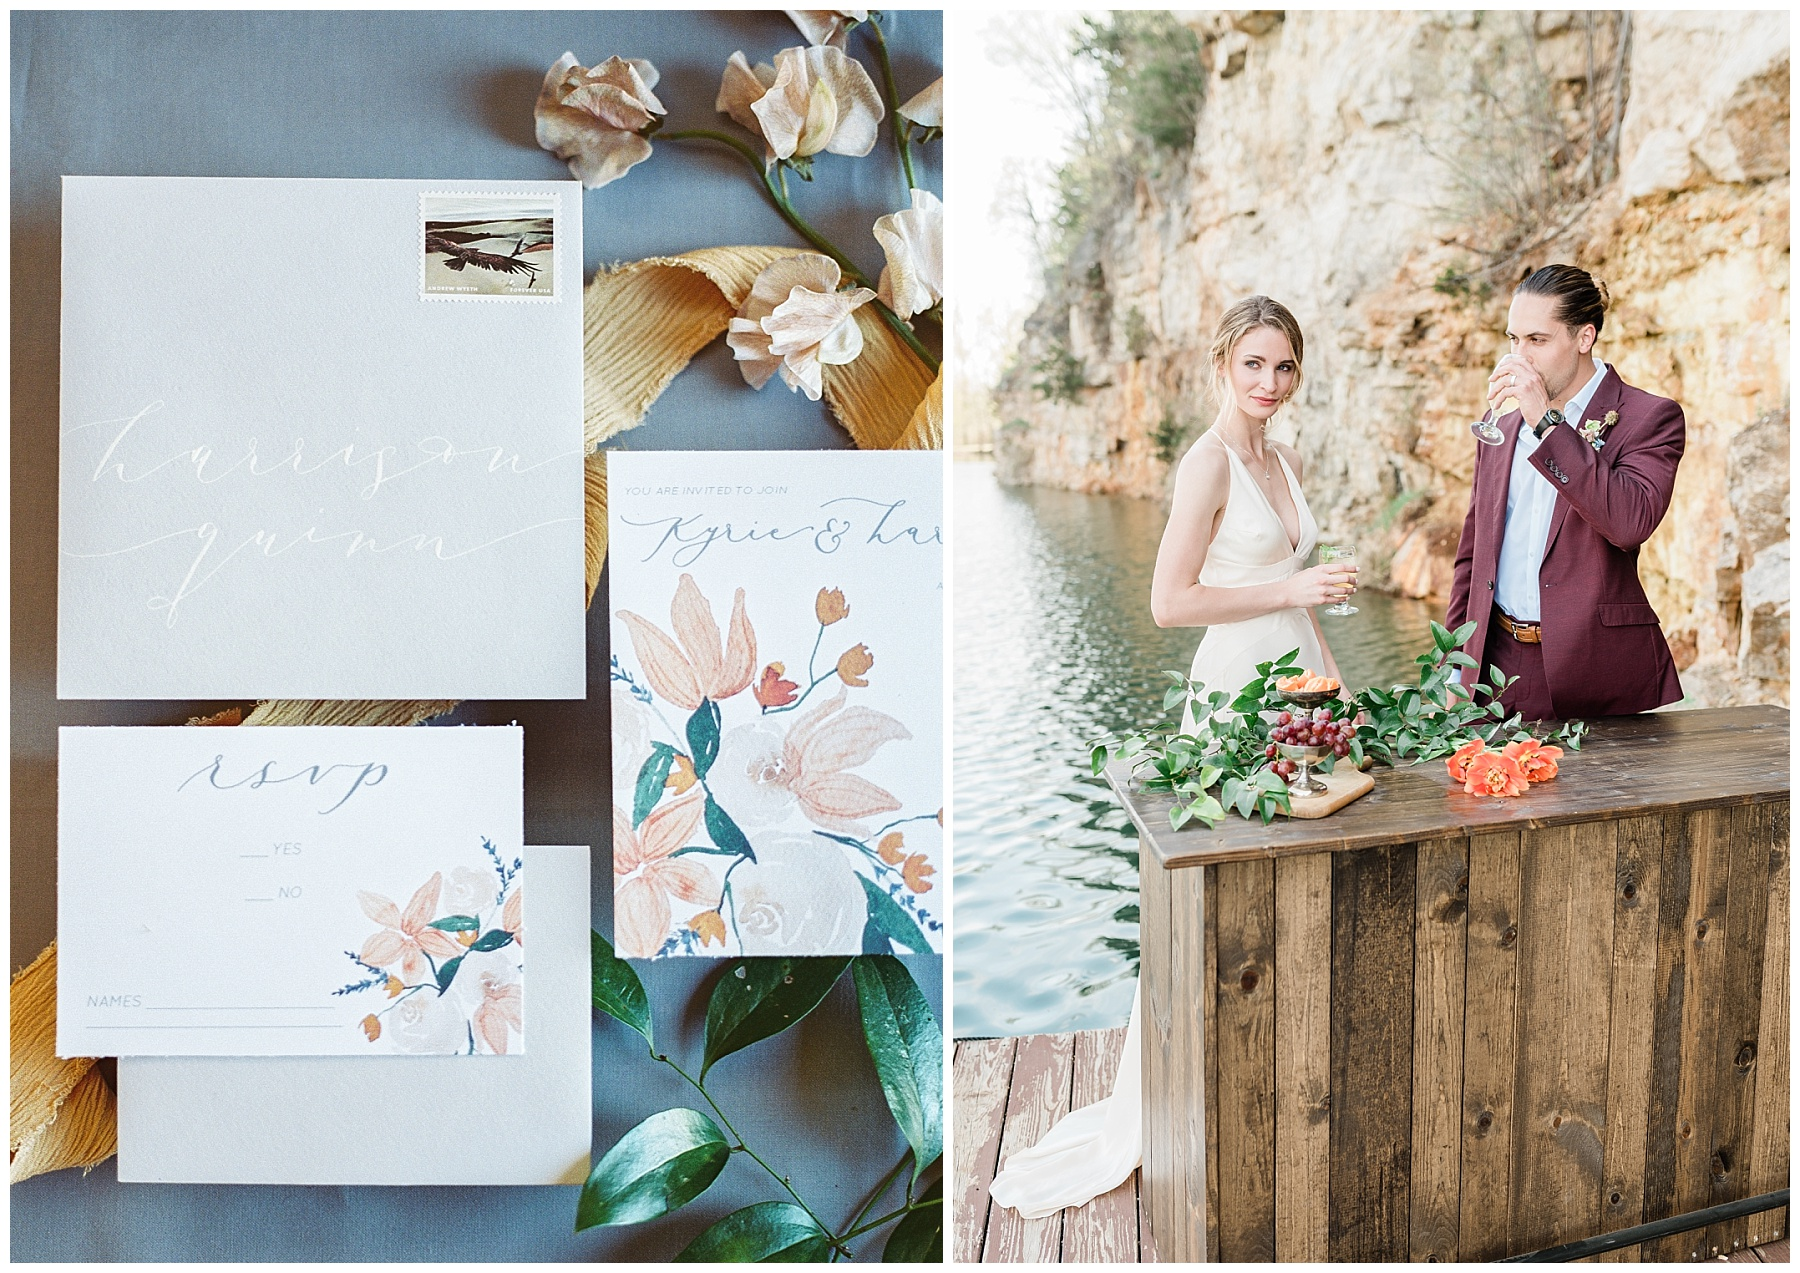 Intimate Spanish and French Inspired Destination Wedding with Lakeside Dinner Party at Dusk at Wildcliff by Kelsi Kliethermes Photography Best Missouri and Maui Wedding Photographer_0048.jpg